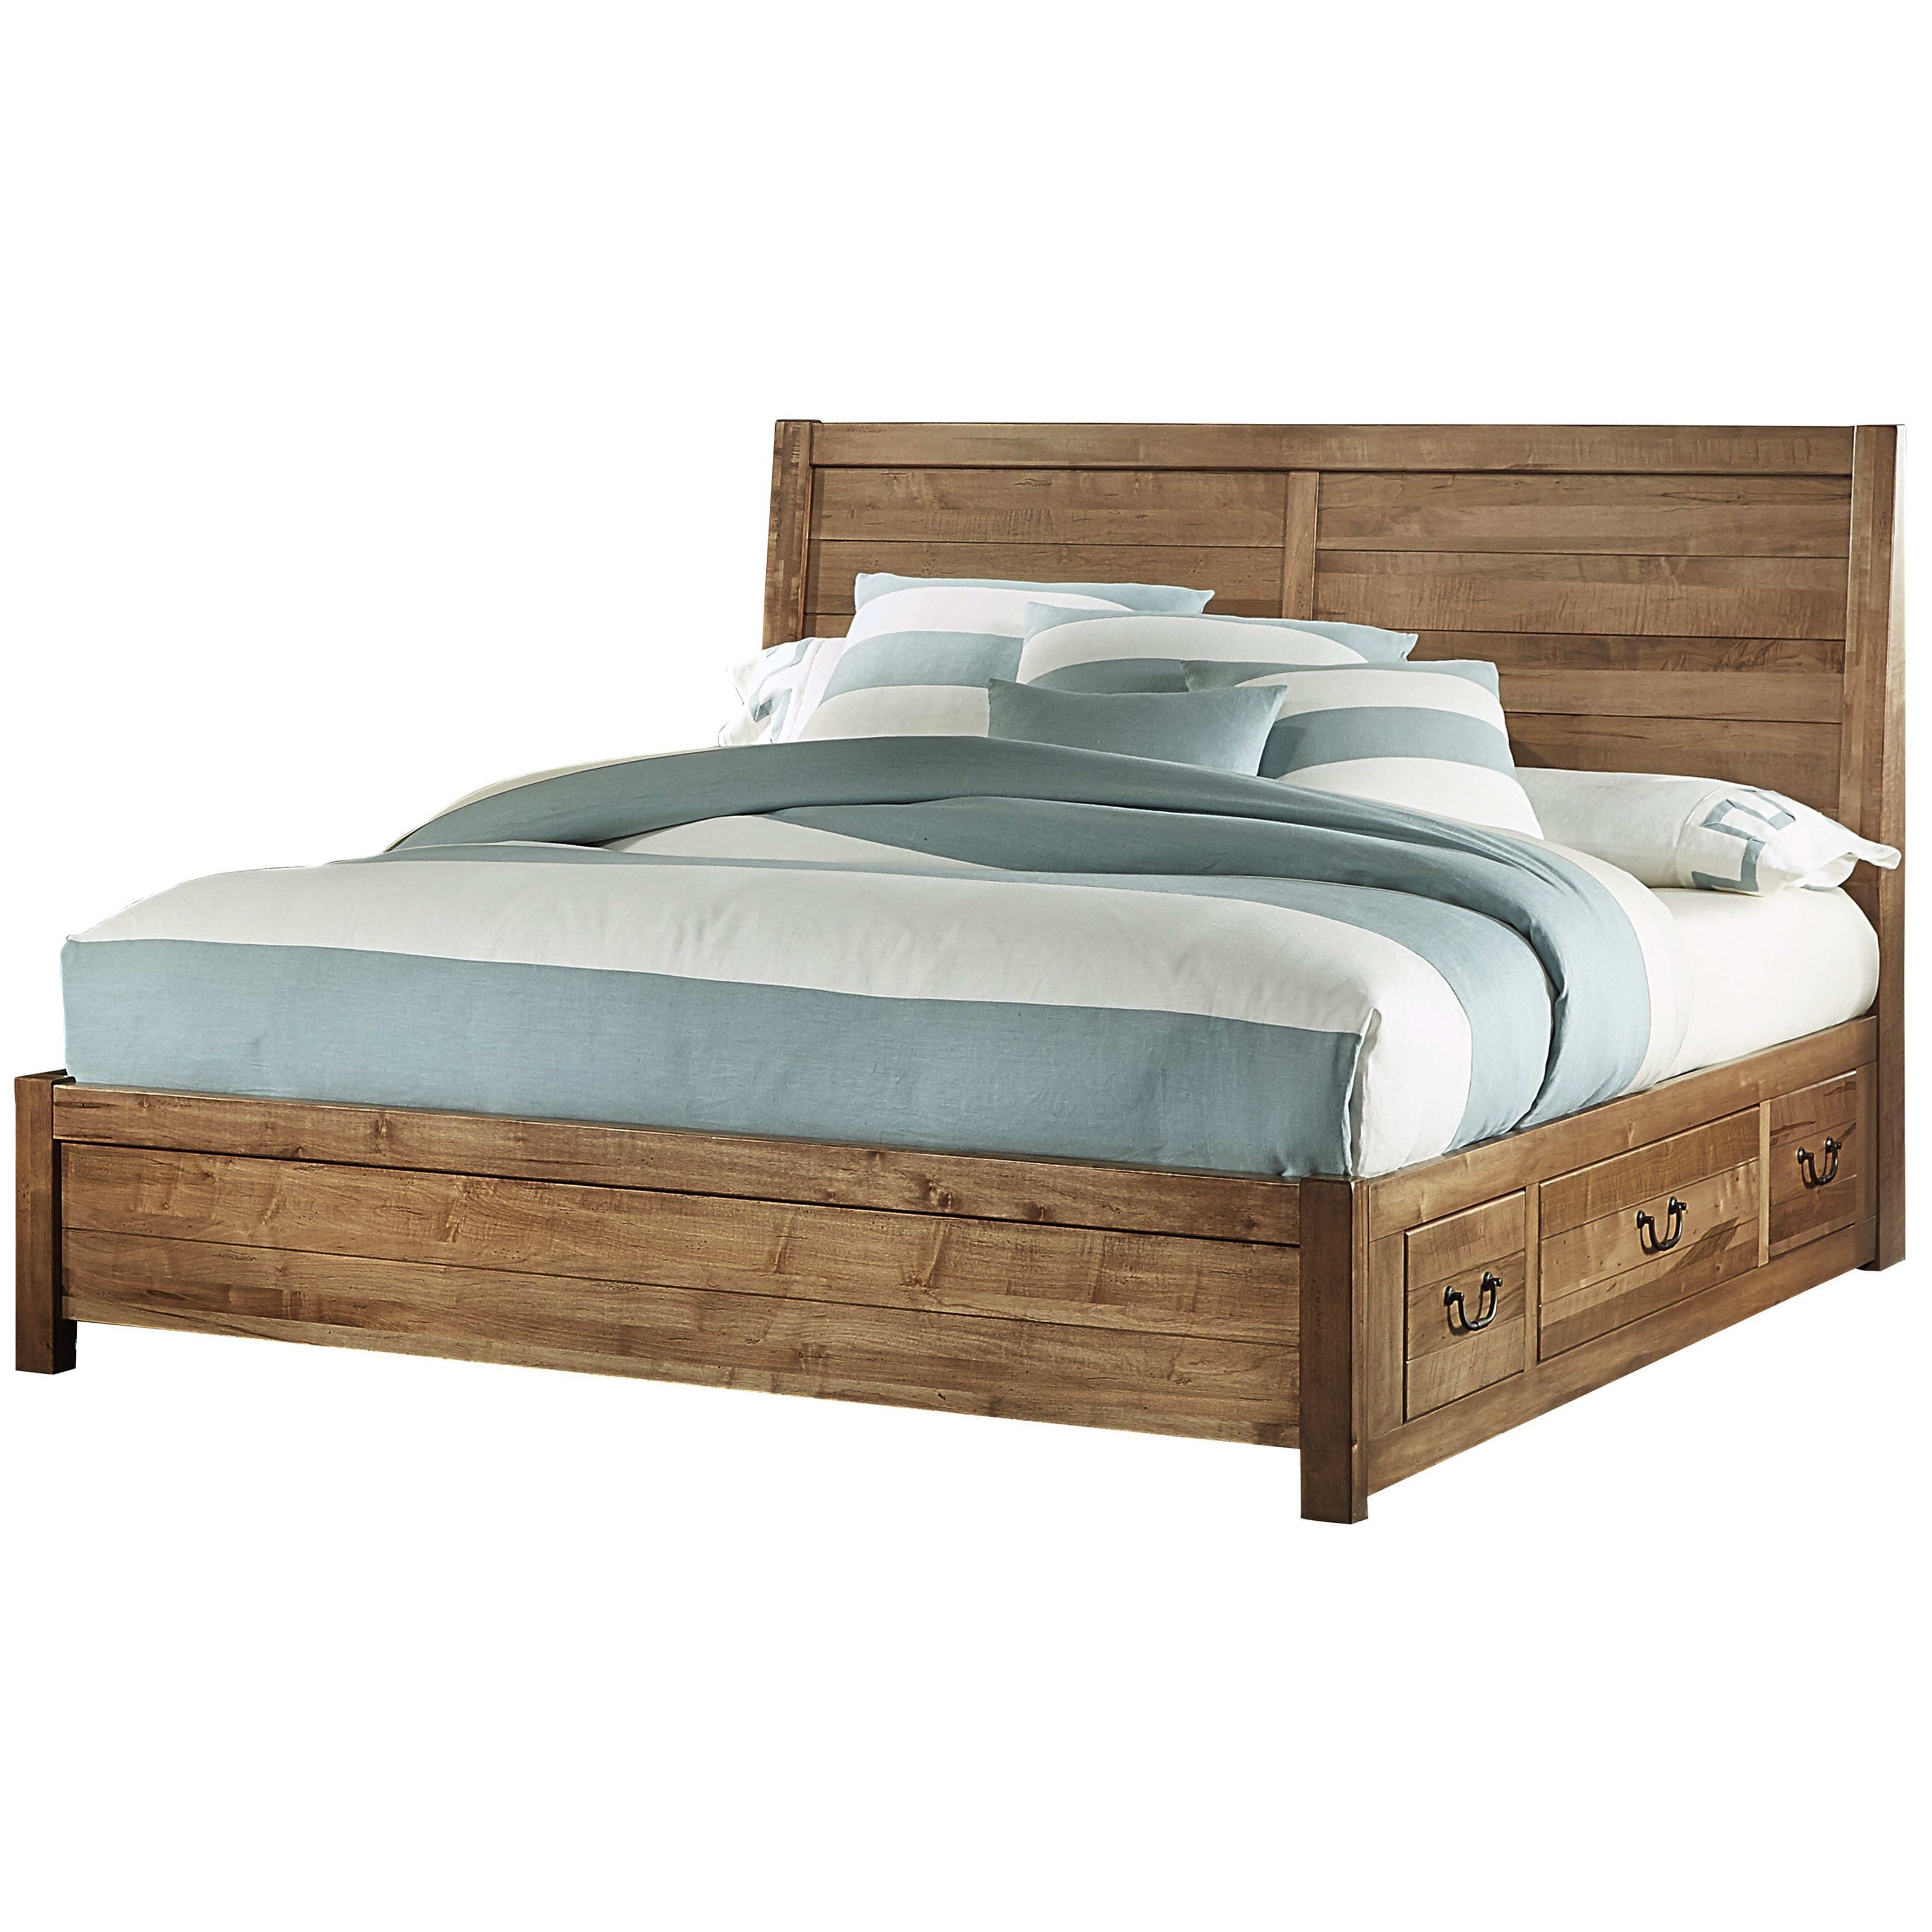 Sedgwick Queen Panel 6 Drawer Storage Bed by Artisan & Post at Zak's Home